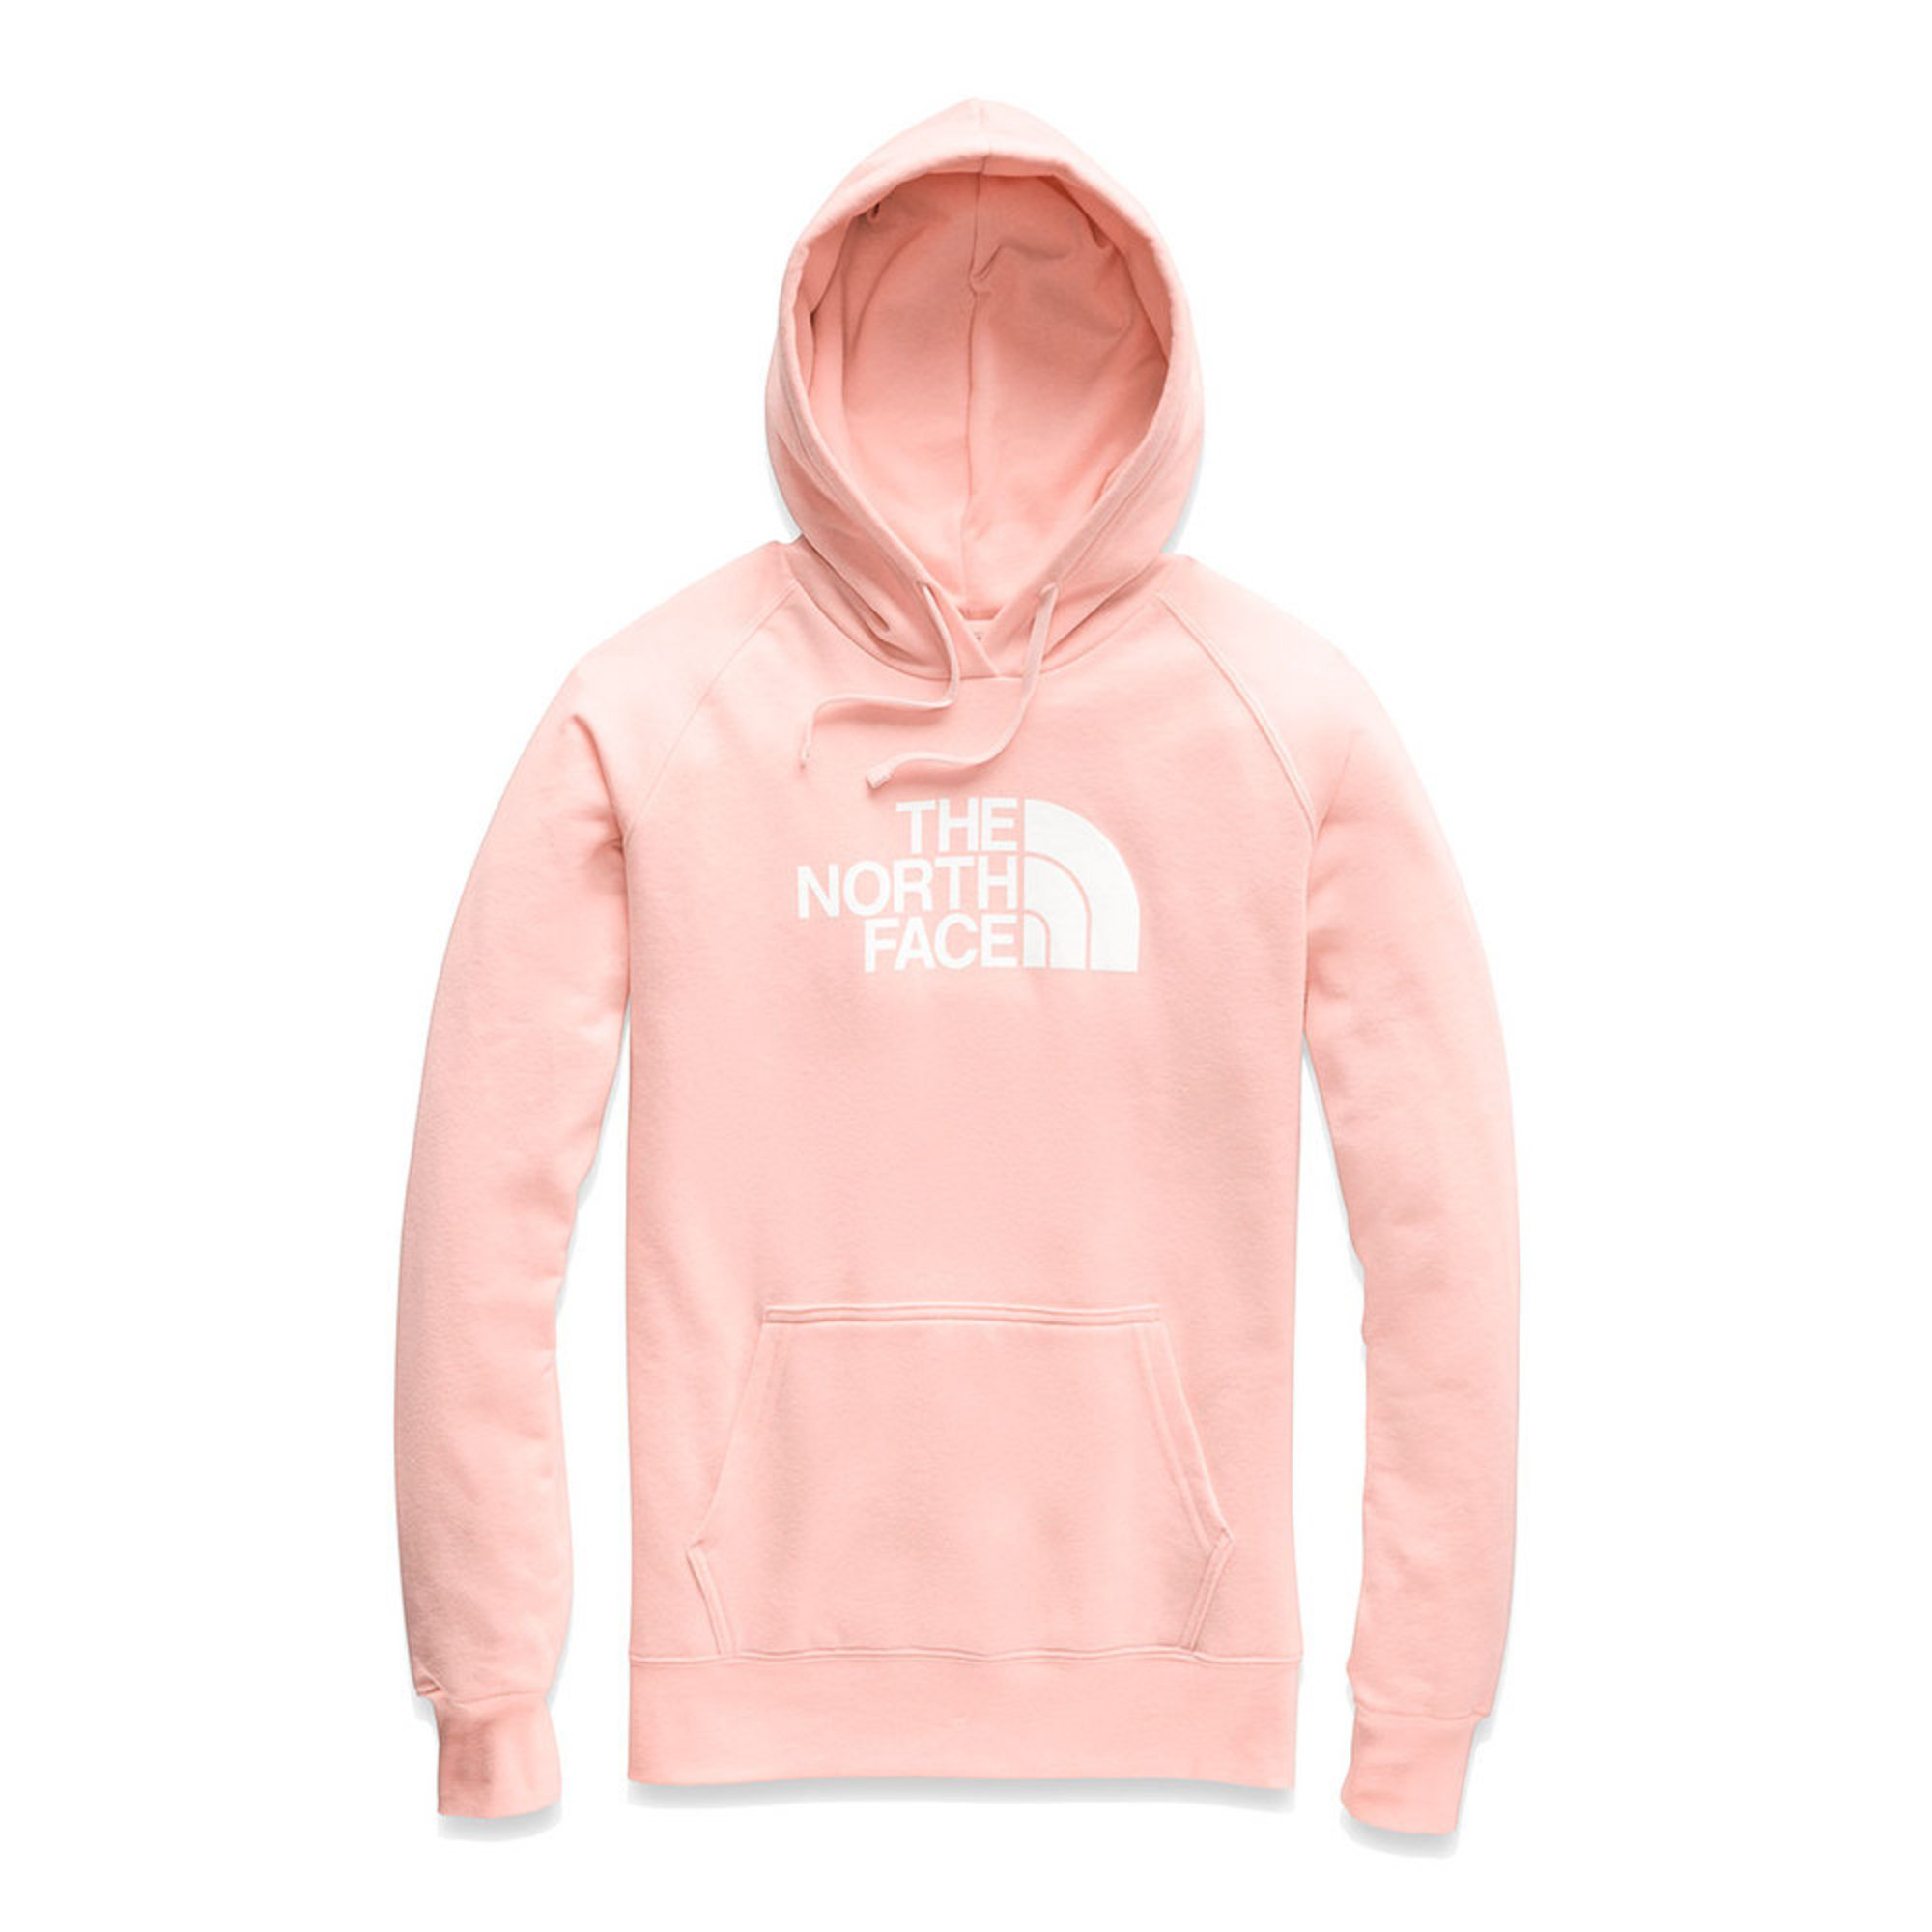 89b1ecfed The North Face Women's Half Dome Pullover Hoodie | Outdoor Hoodies ...